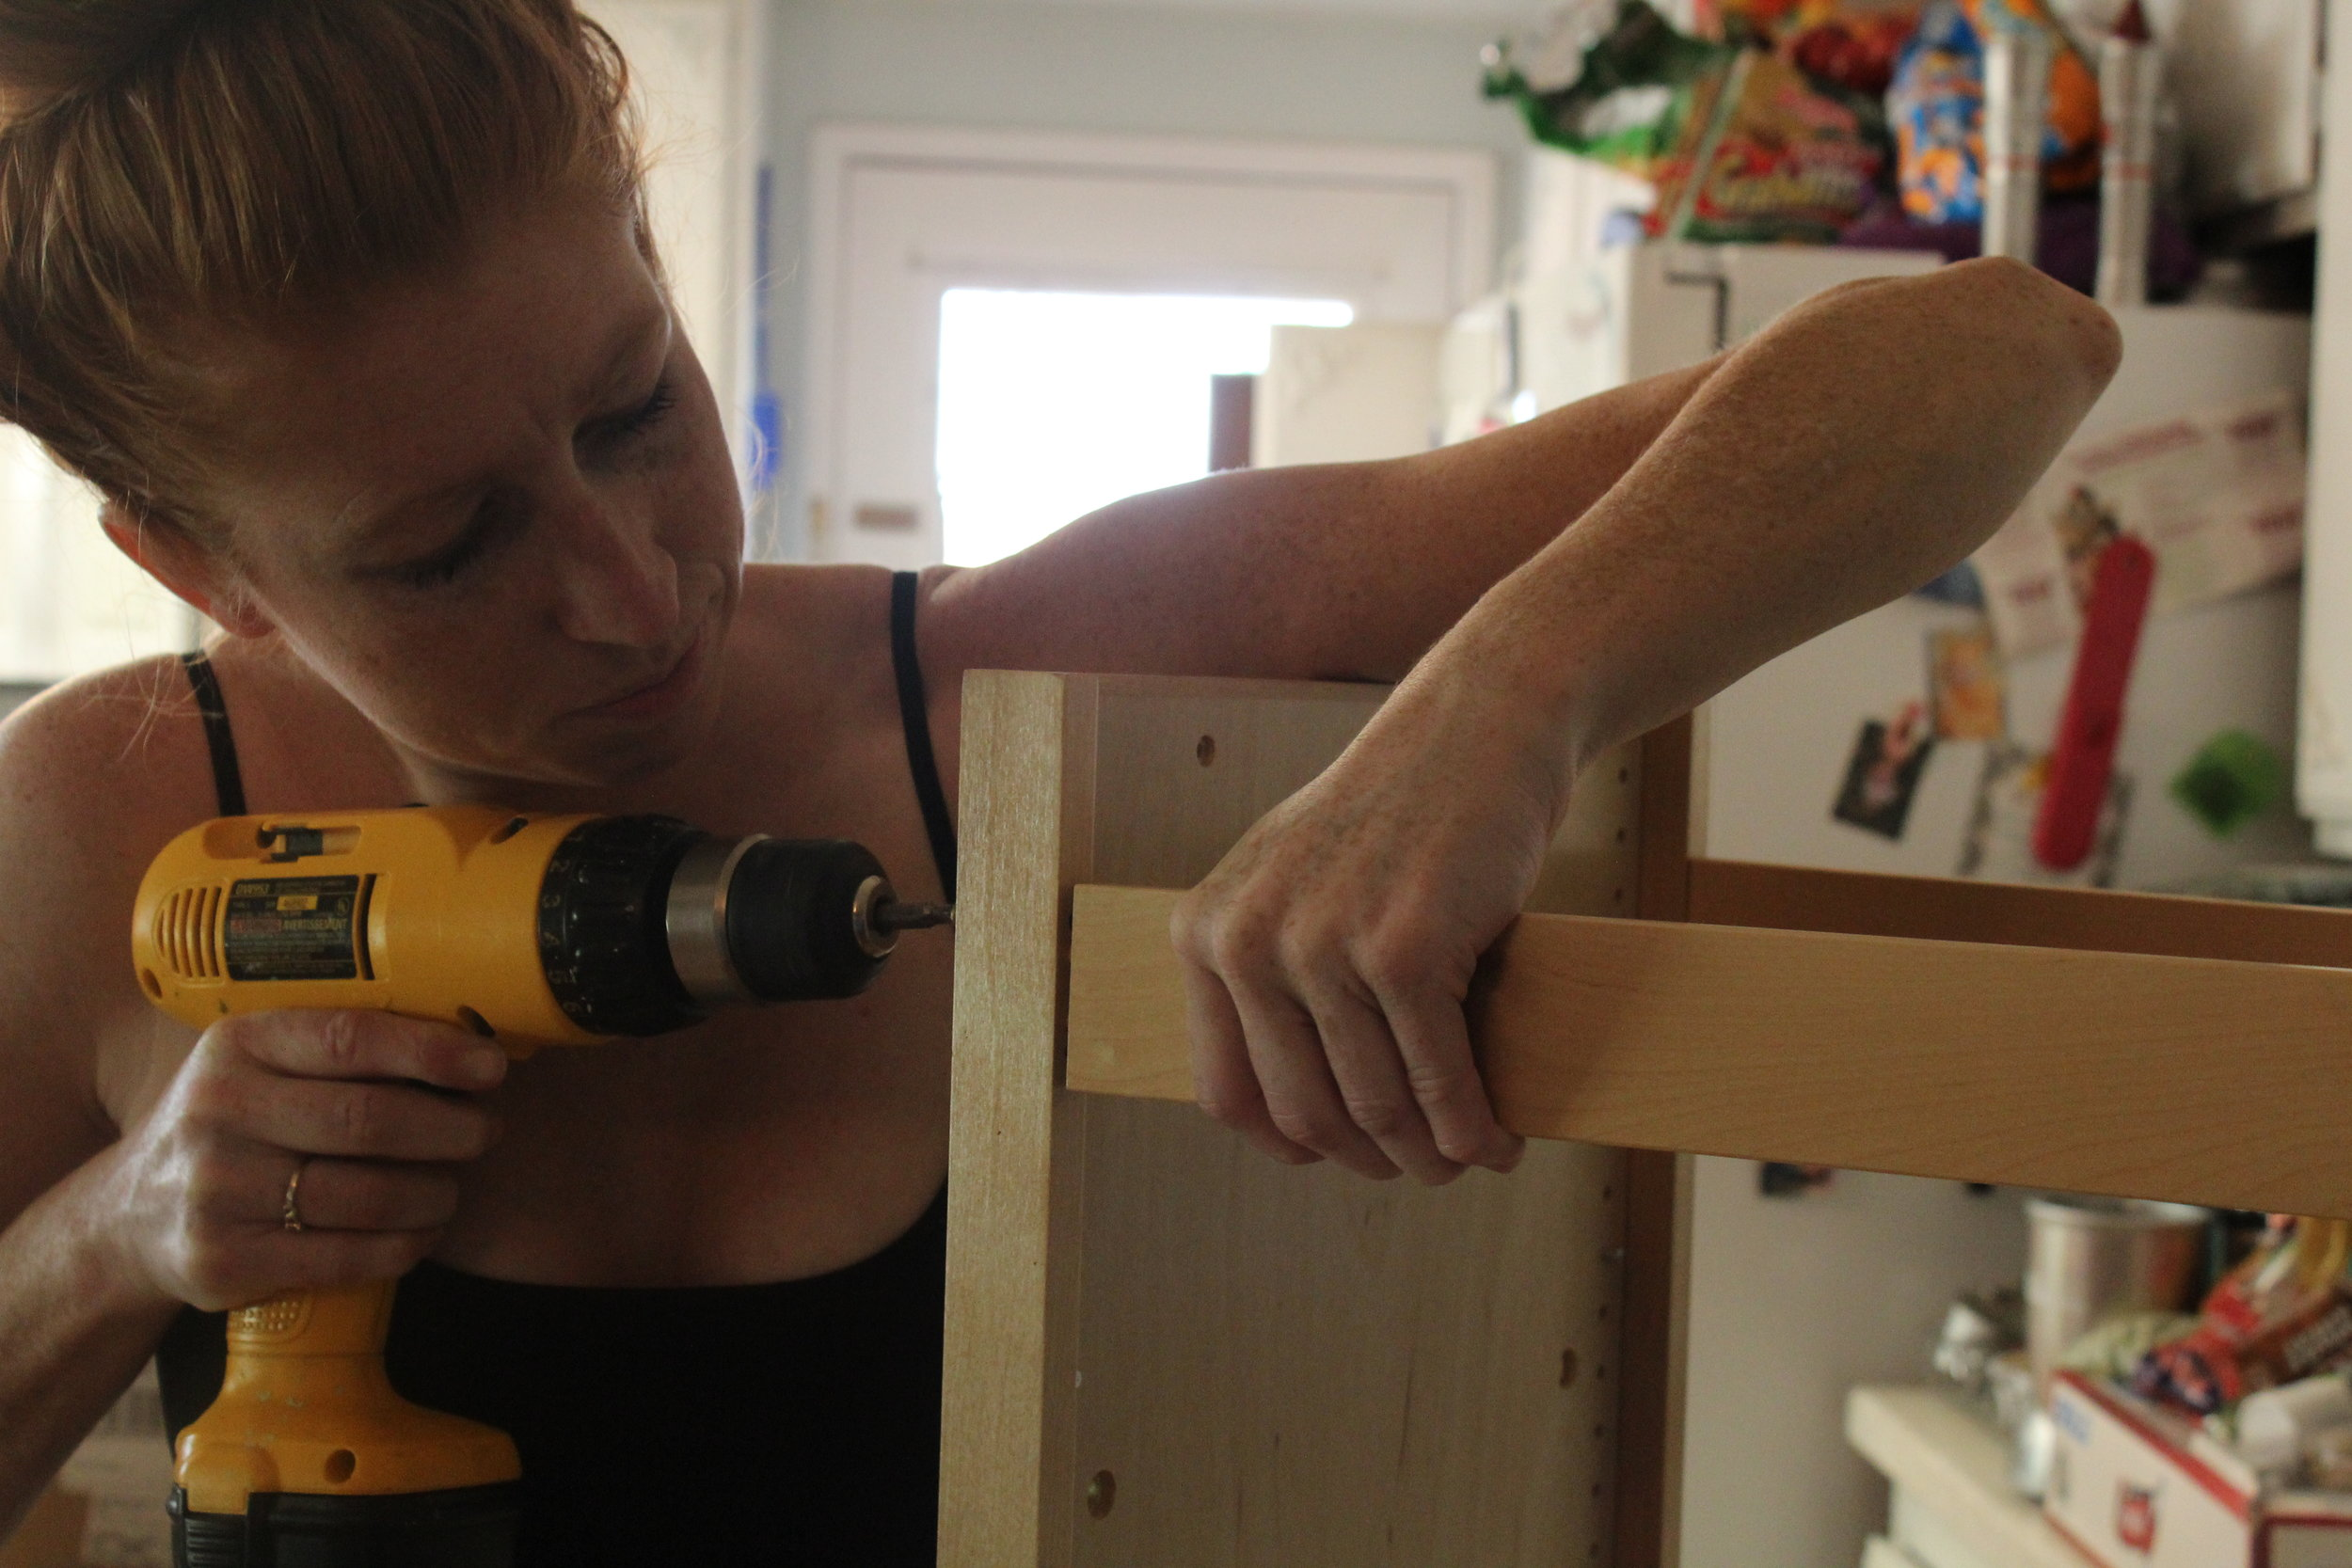 Pantry Pull Out Units - Wordworkers Hardware - wwhardware.com review - whatthegirlssay.com